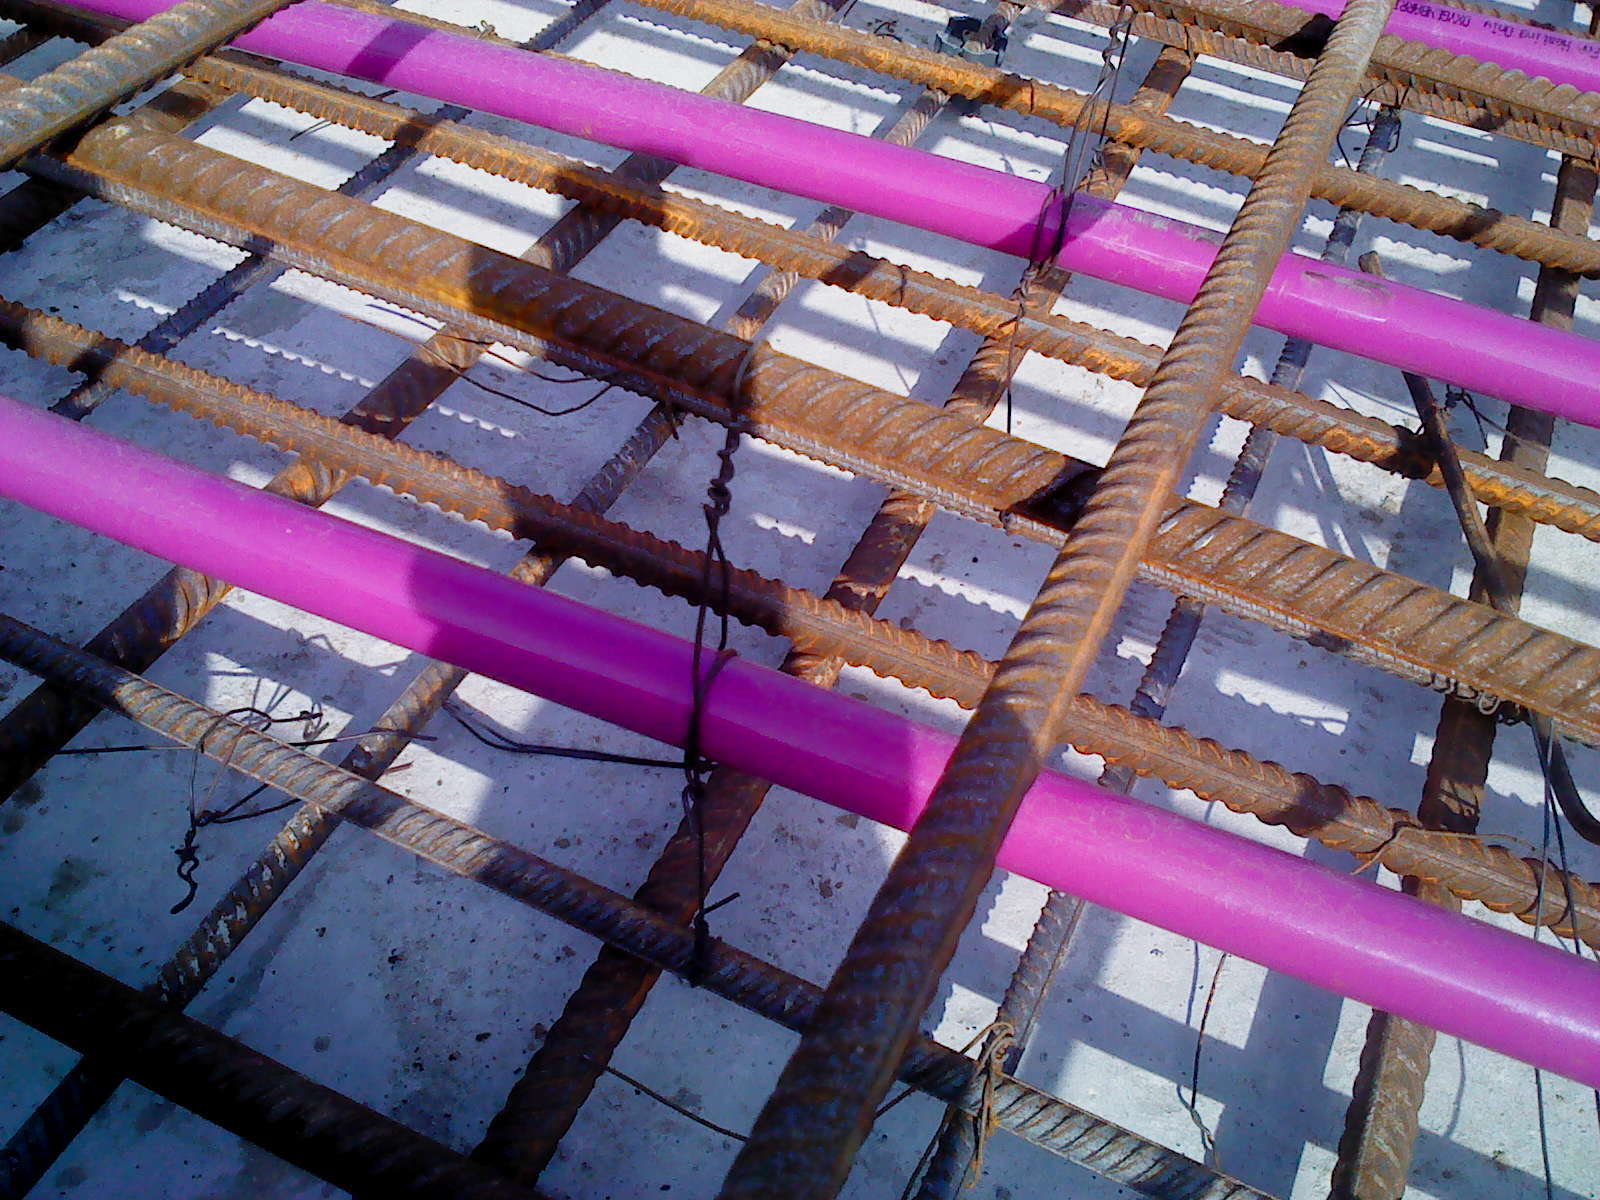 Heating pipes are mounted in the floor slab